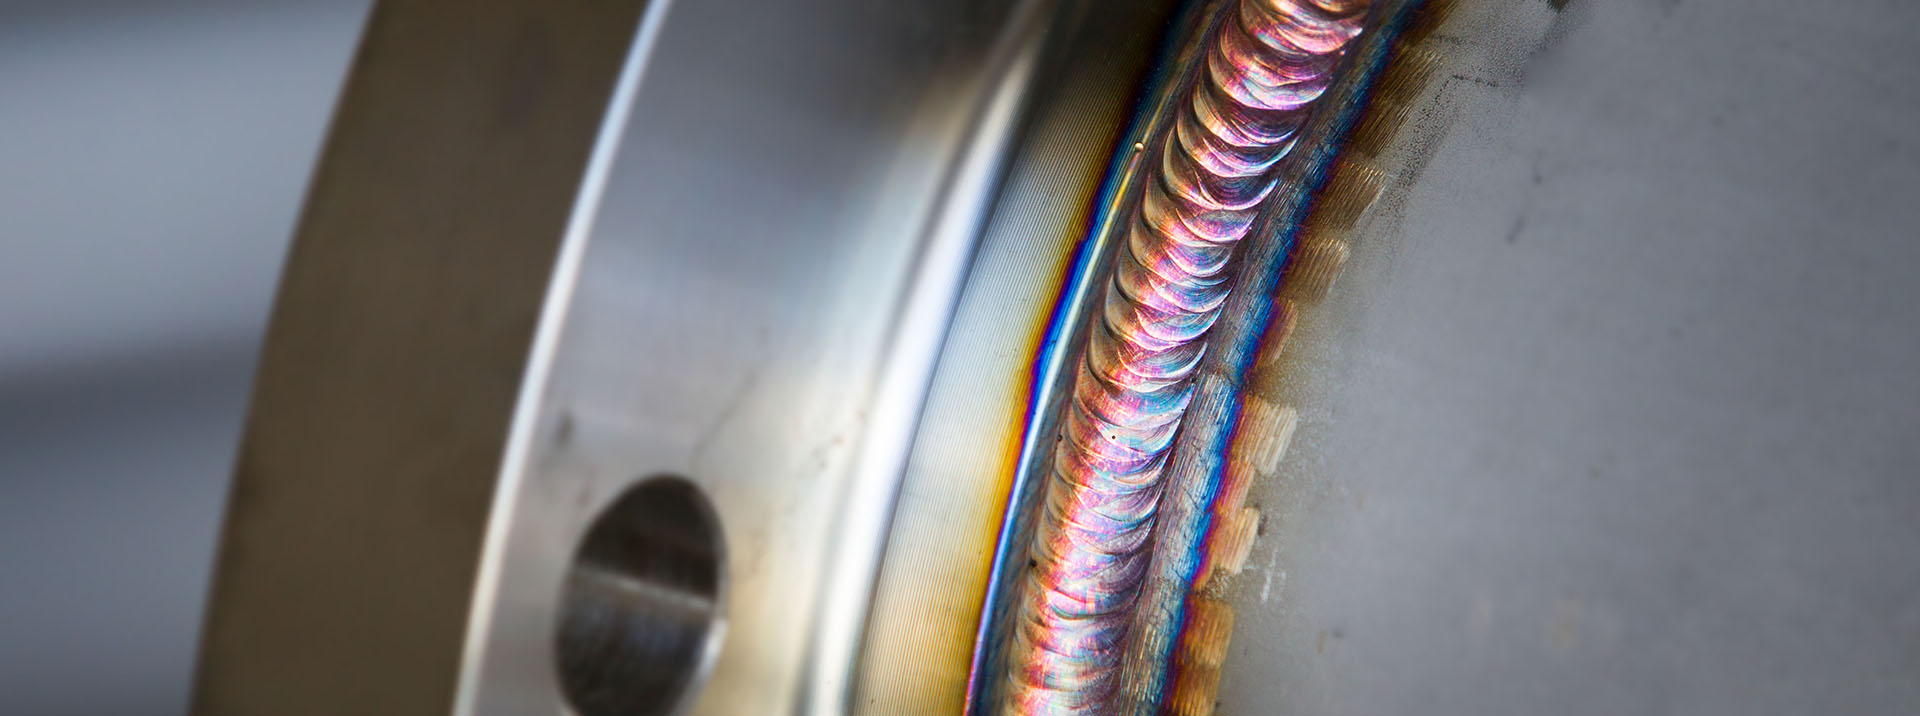 Piping & Welding